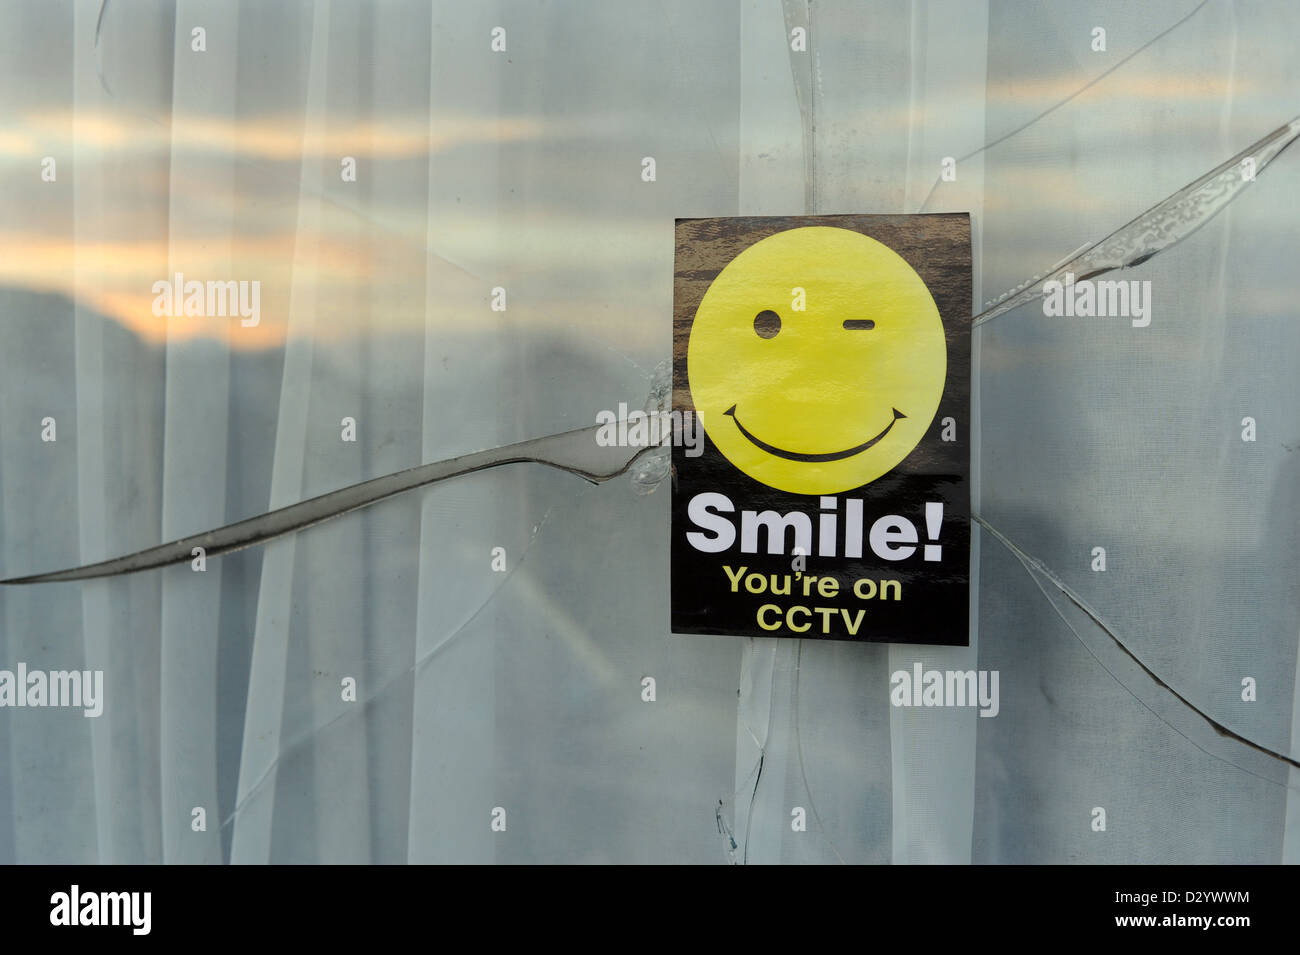 A 'Smile! You're on CCTV' sticker on a broken window - Stock Image